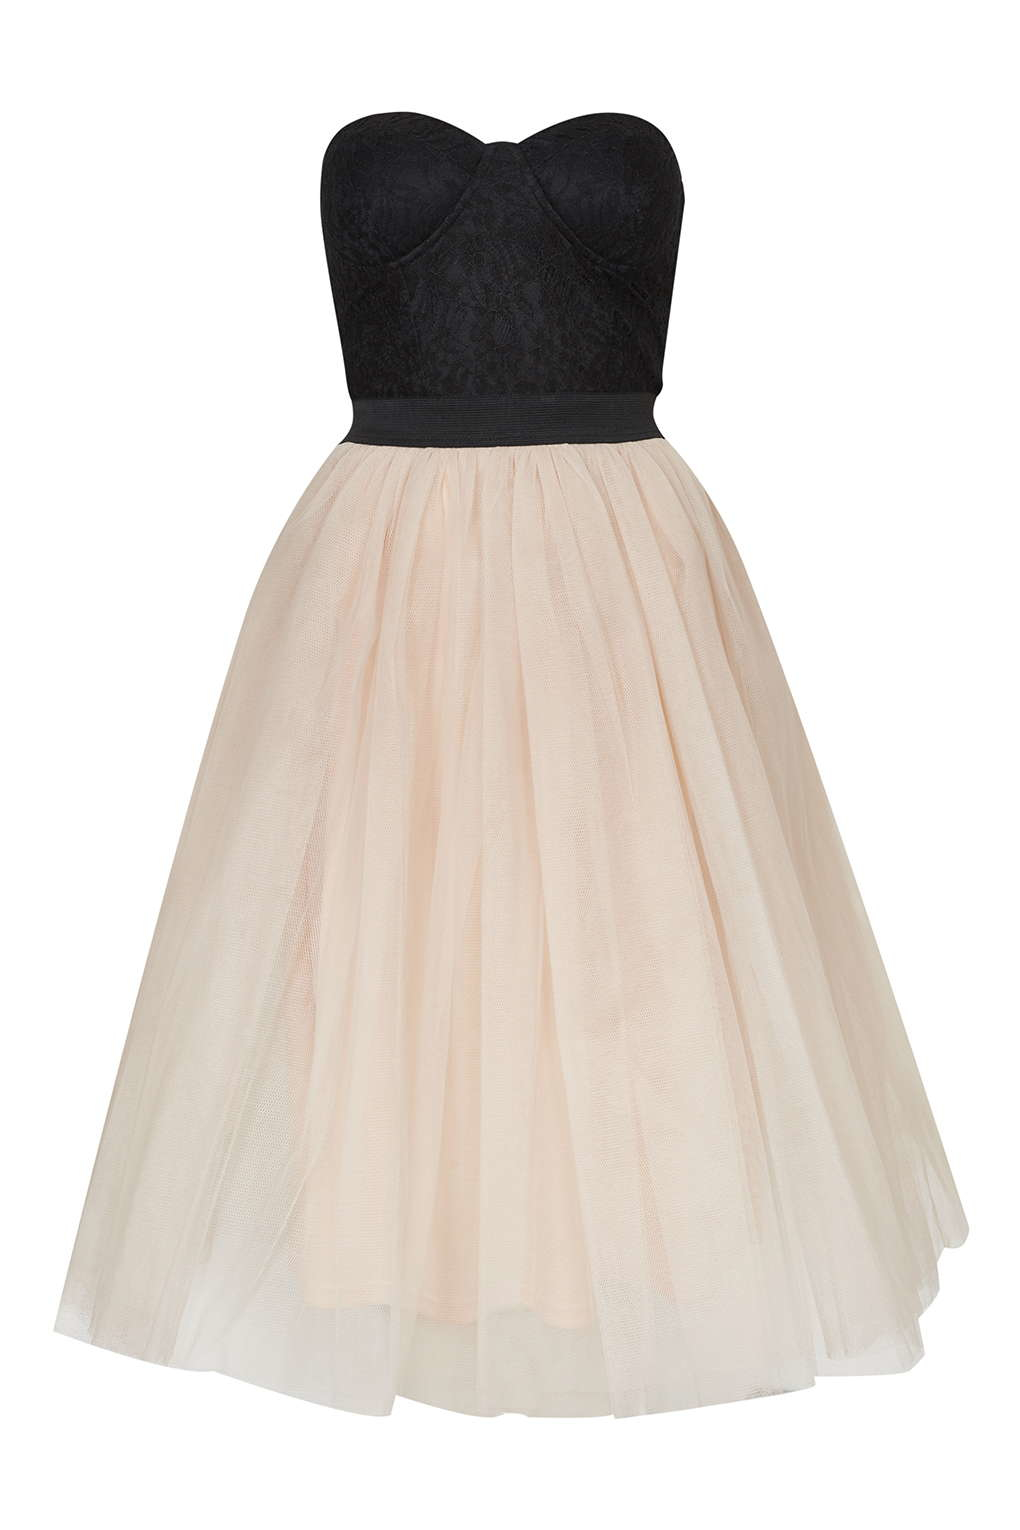 b60d2cafef24 TOPSHOP Bustier Tutu Prom Dress By Rare in Black - Lyst